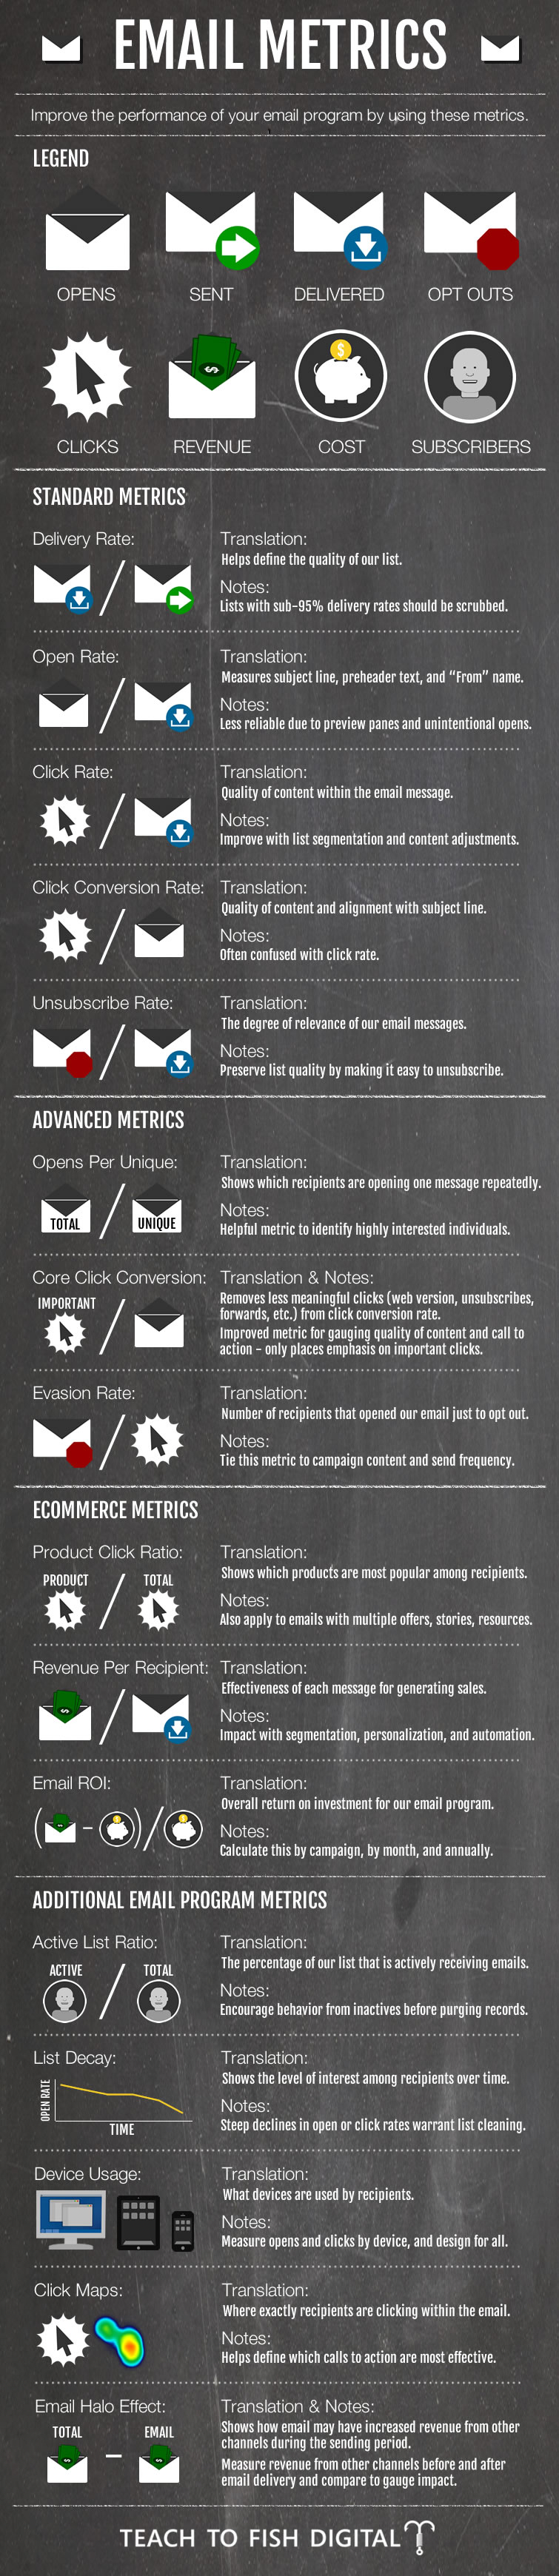 Email Marketing Metrics Infographic